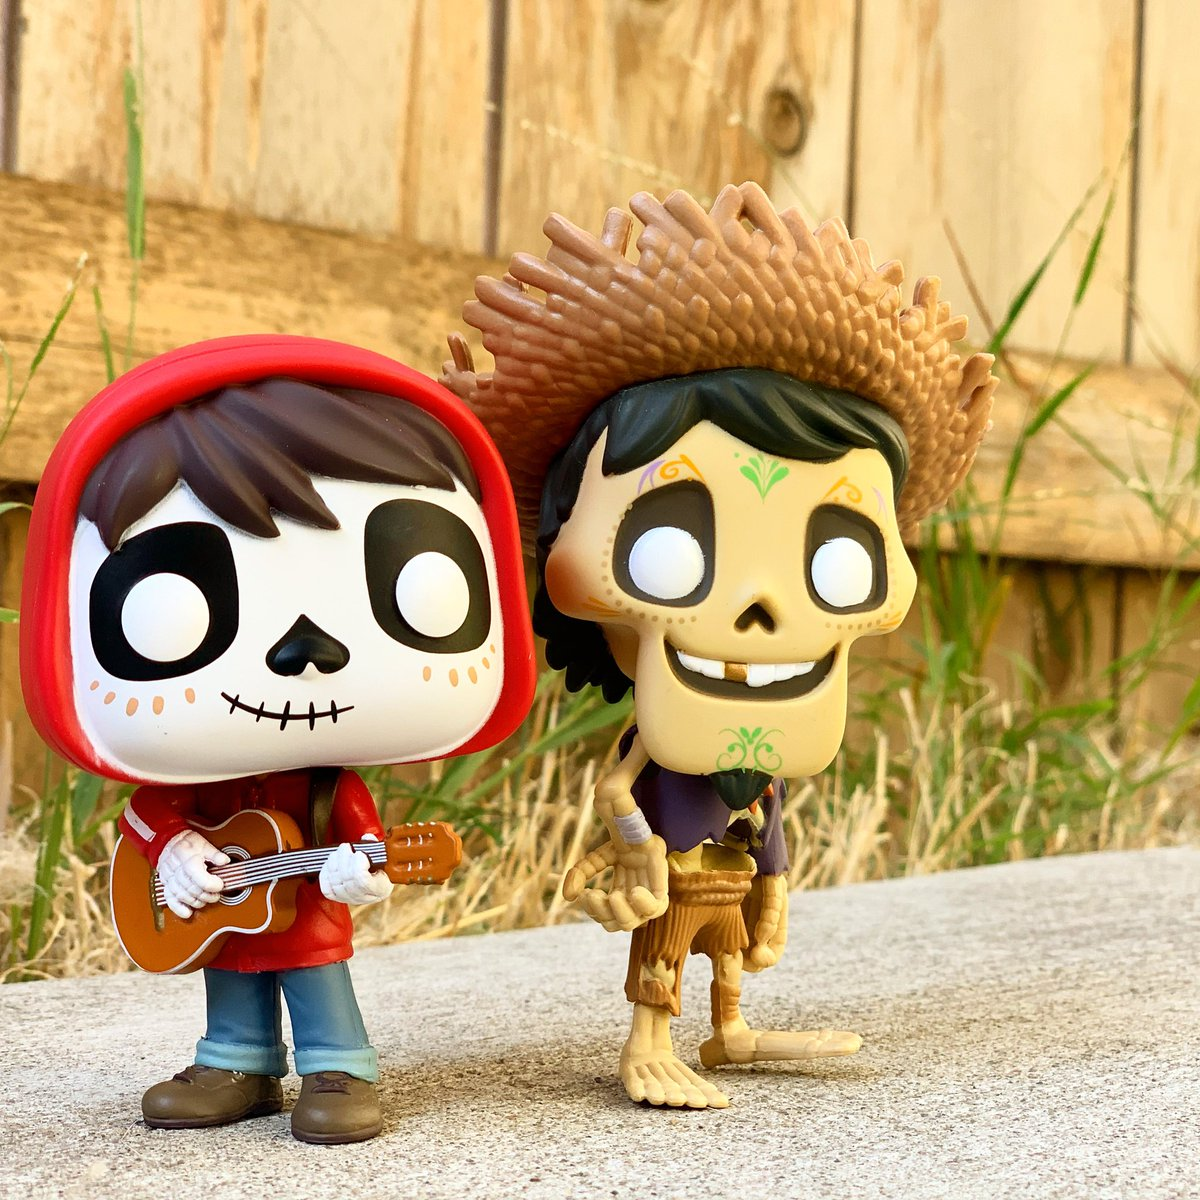 Day 10: Favorite Halloween Movie I know it's not quite Halloween but I still love watching Coco around this time! #funkophotoaday @originalfunko  • • • #funko #funkofunatic #funkofun #funkofamily #funaticofthemonth #myfunkosyory #funkopop https://t.co/cmKVpPbSs1